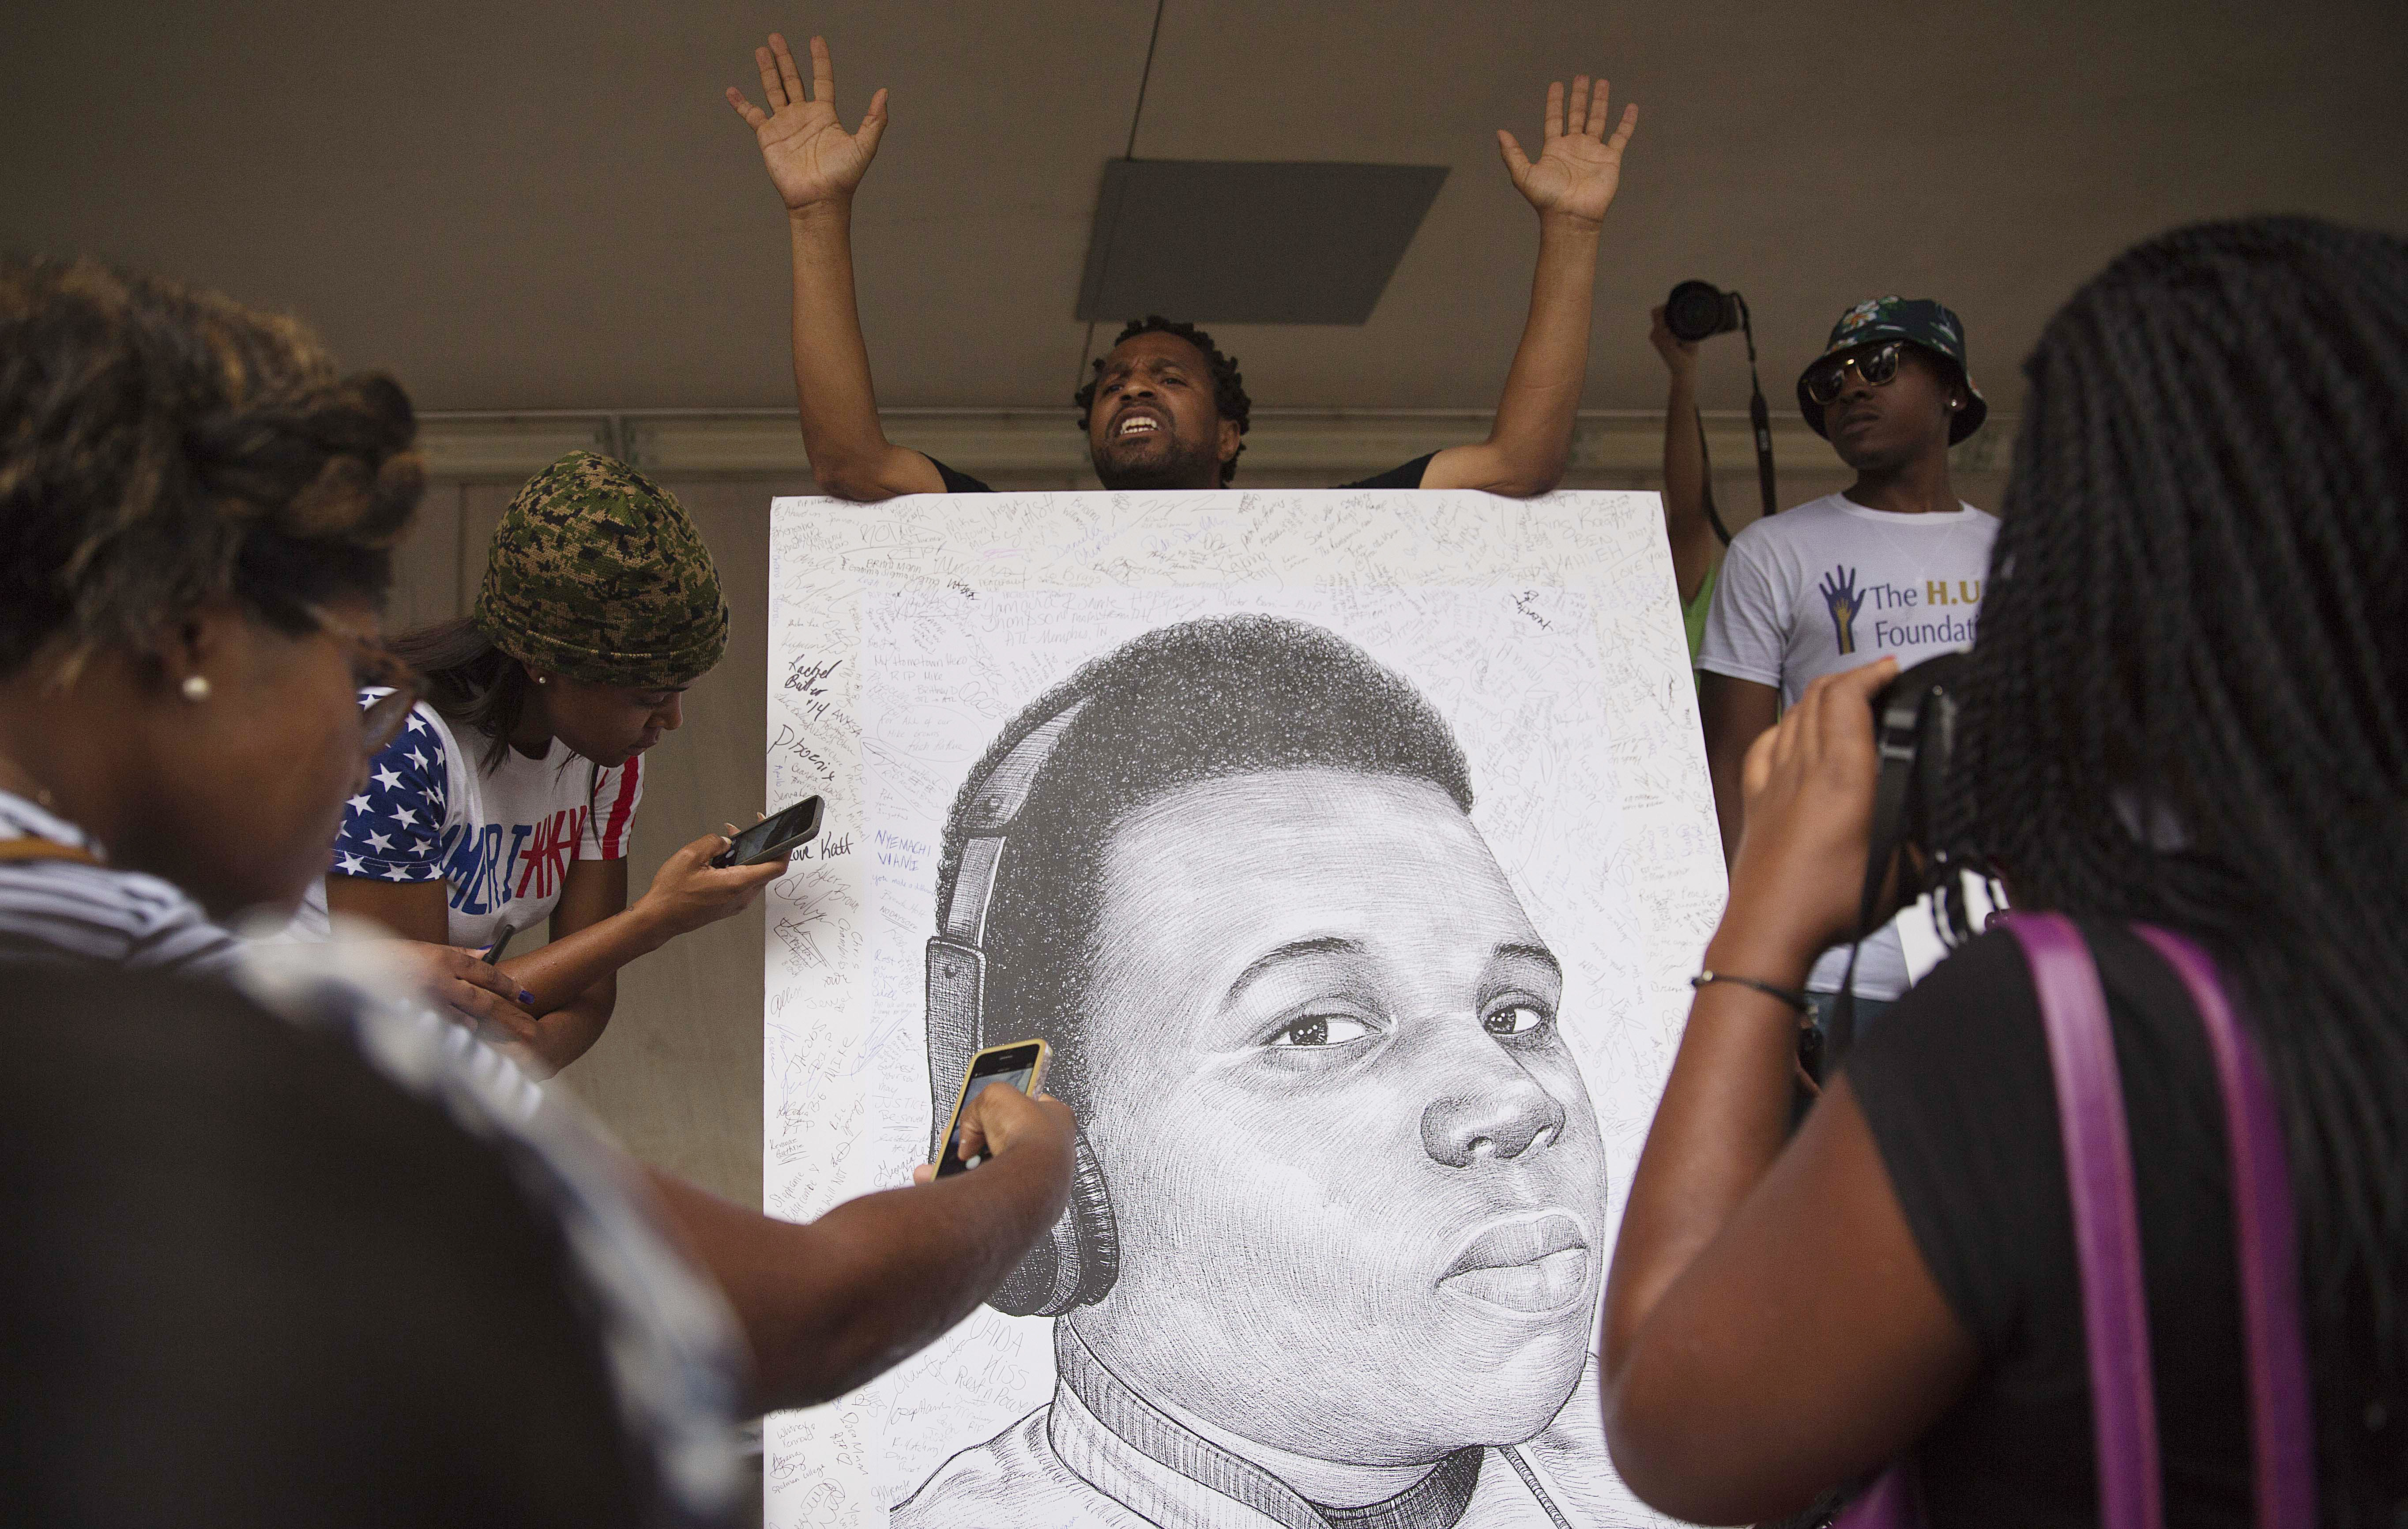 Demonstrators autograph a drawing of Michael Brown during a protest against the fatal police shooting, in Atlanta on Aug. 18, 2014.